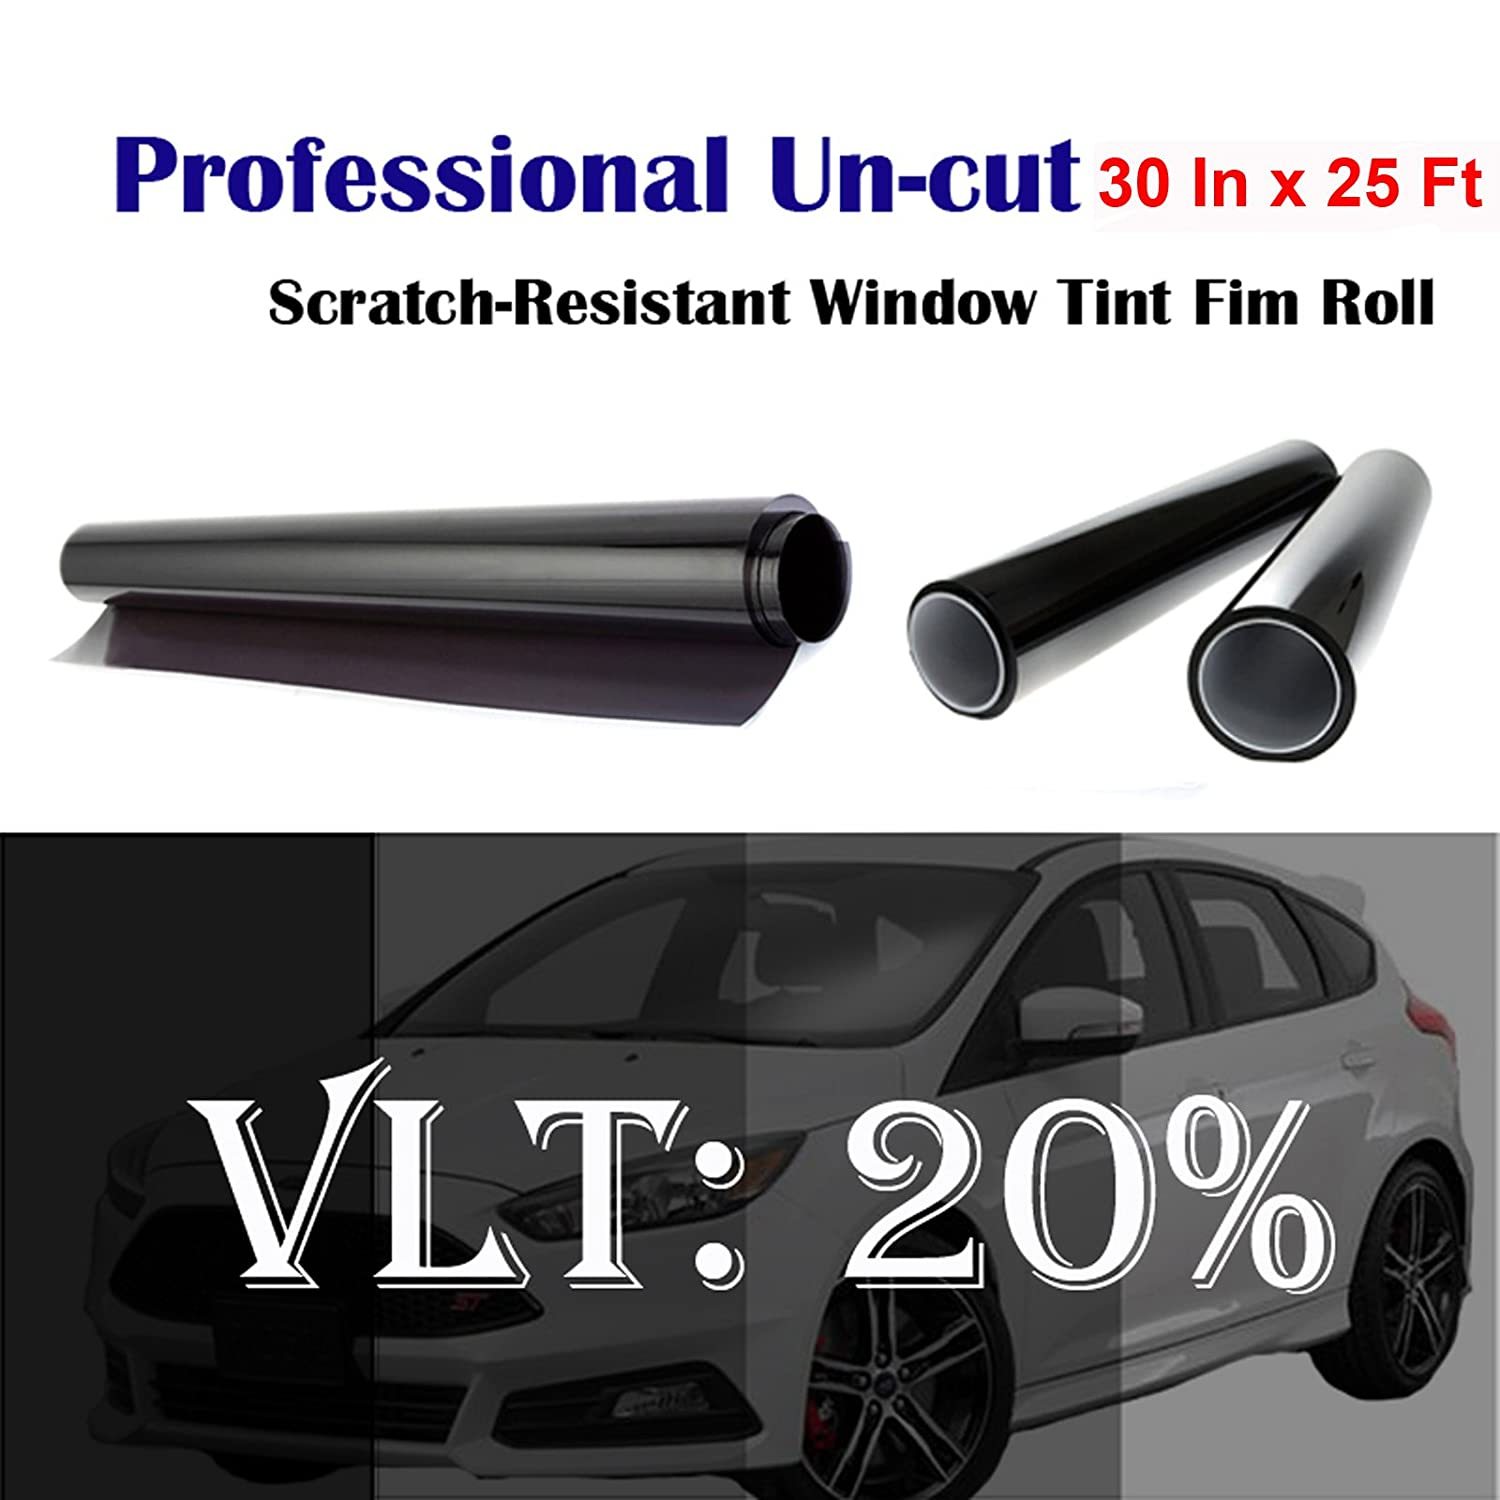 Uncut Roll Window Tint Film 20% VLT 30' In x 25' Ft Feet ( 30 X 300 Inch ) Car Home Office Glasss Mkbrother